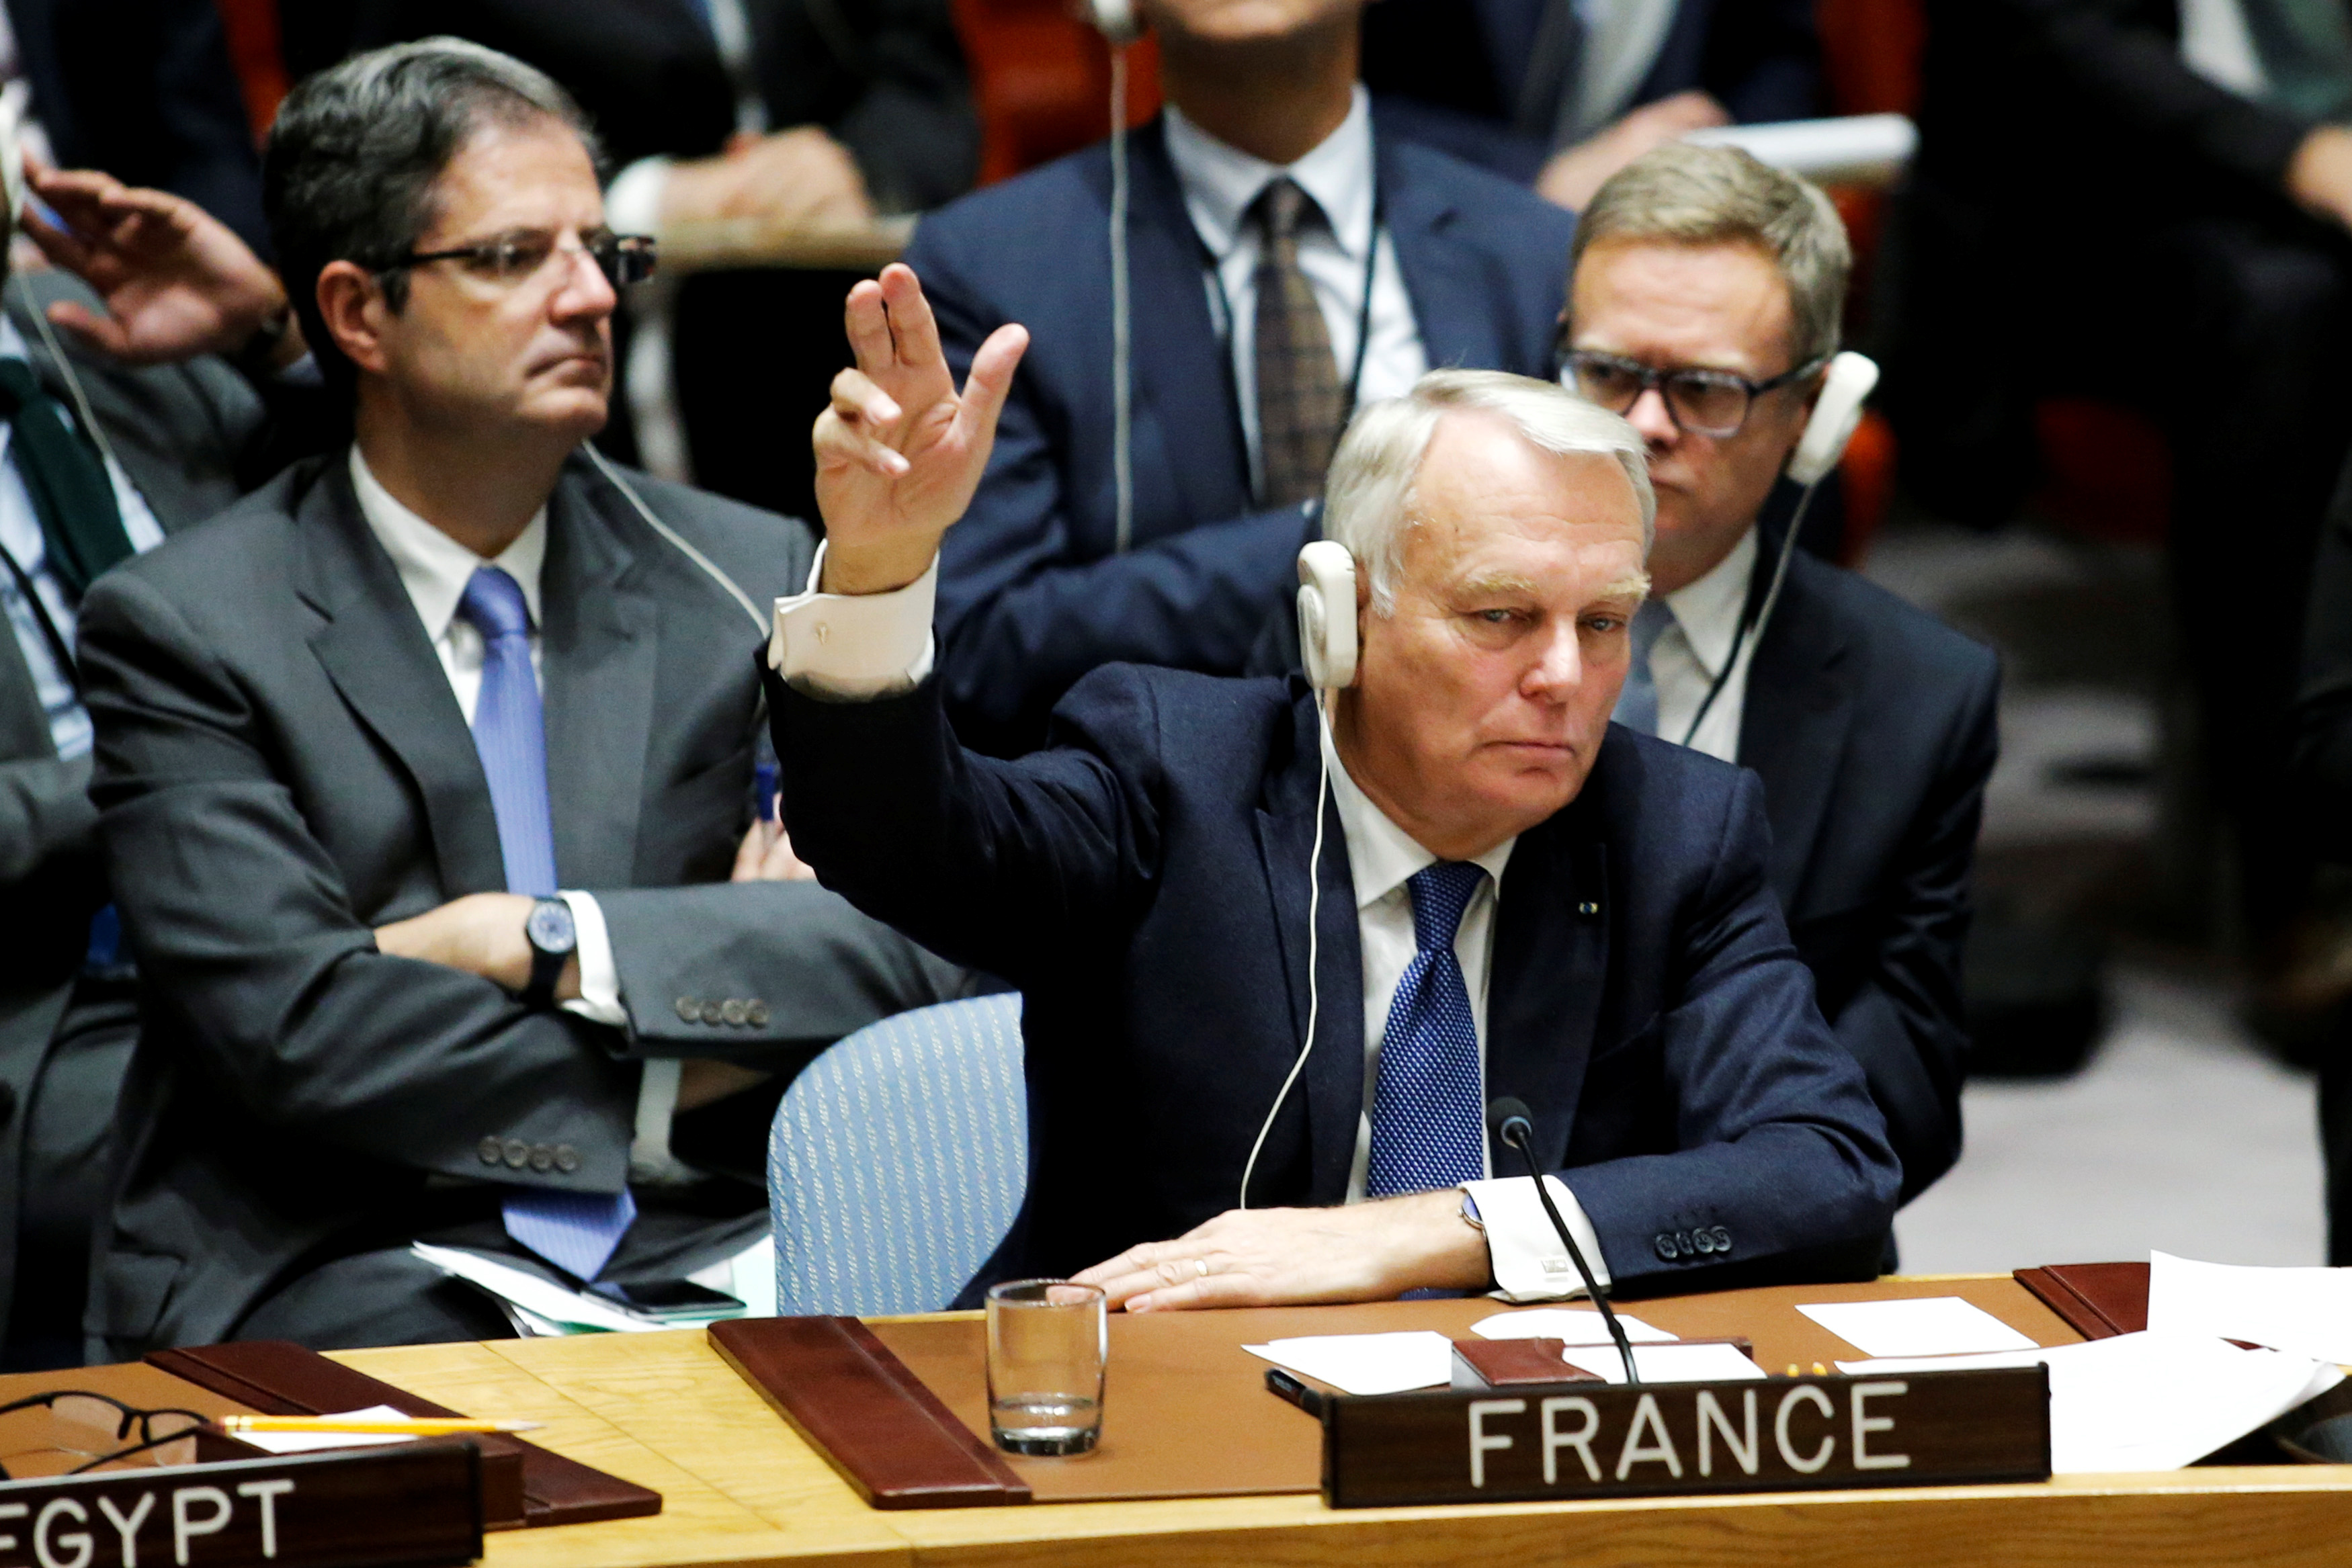 FILE - France's Foreign Minister Jean-Marc Ayrault votes in favor of a draft resolution that demands an immediate end to air strikes and military flights over Syria's Aleppo city, during a meeting of Members of Security Council at the U.N. Headquarte...